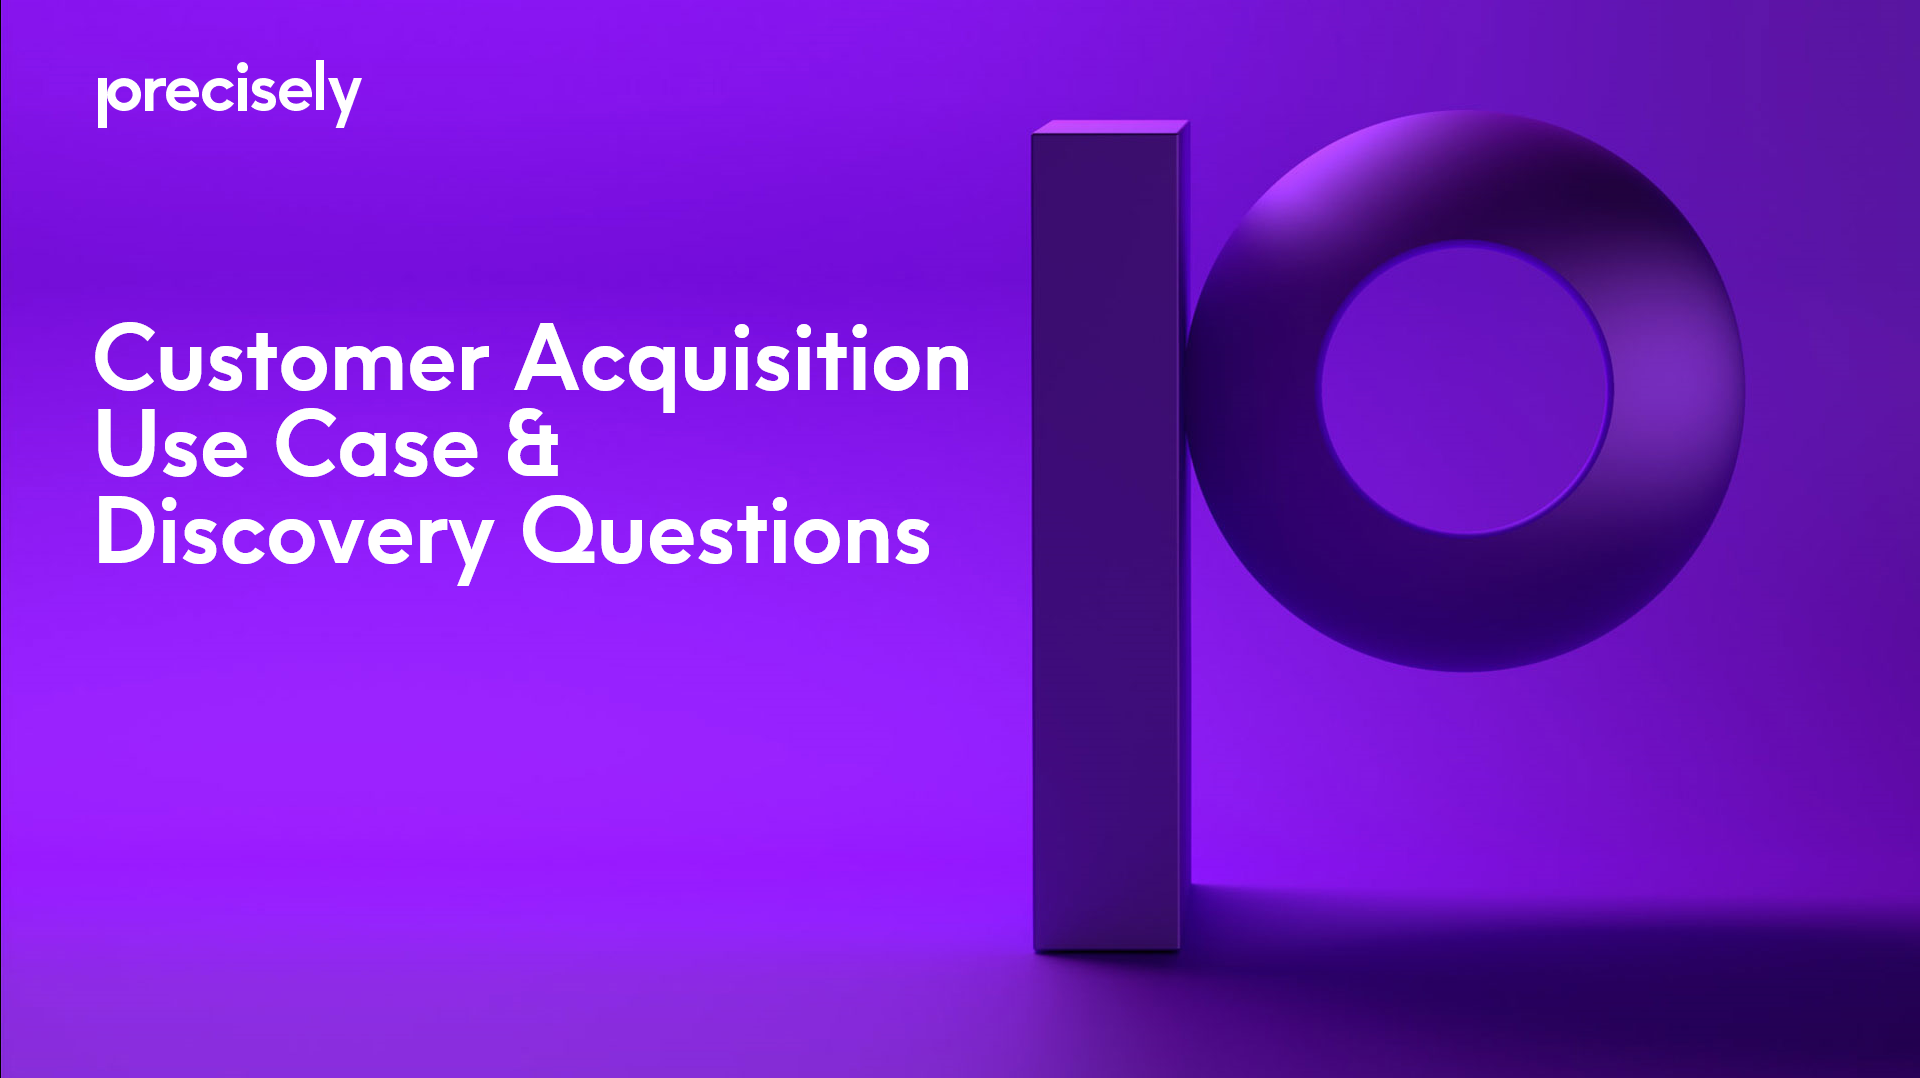 Customer Acquisition Use Case & Discovery Questions